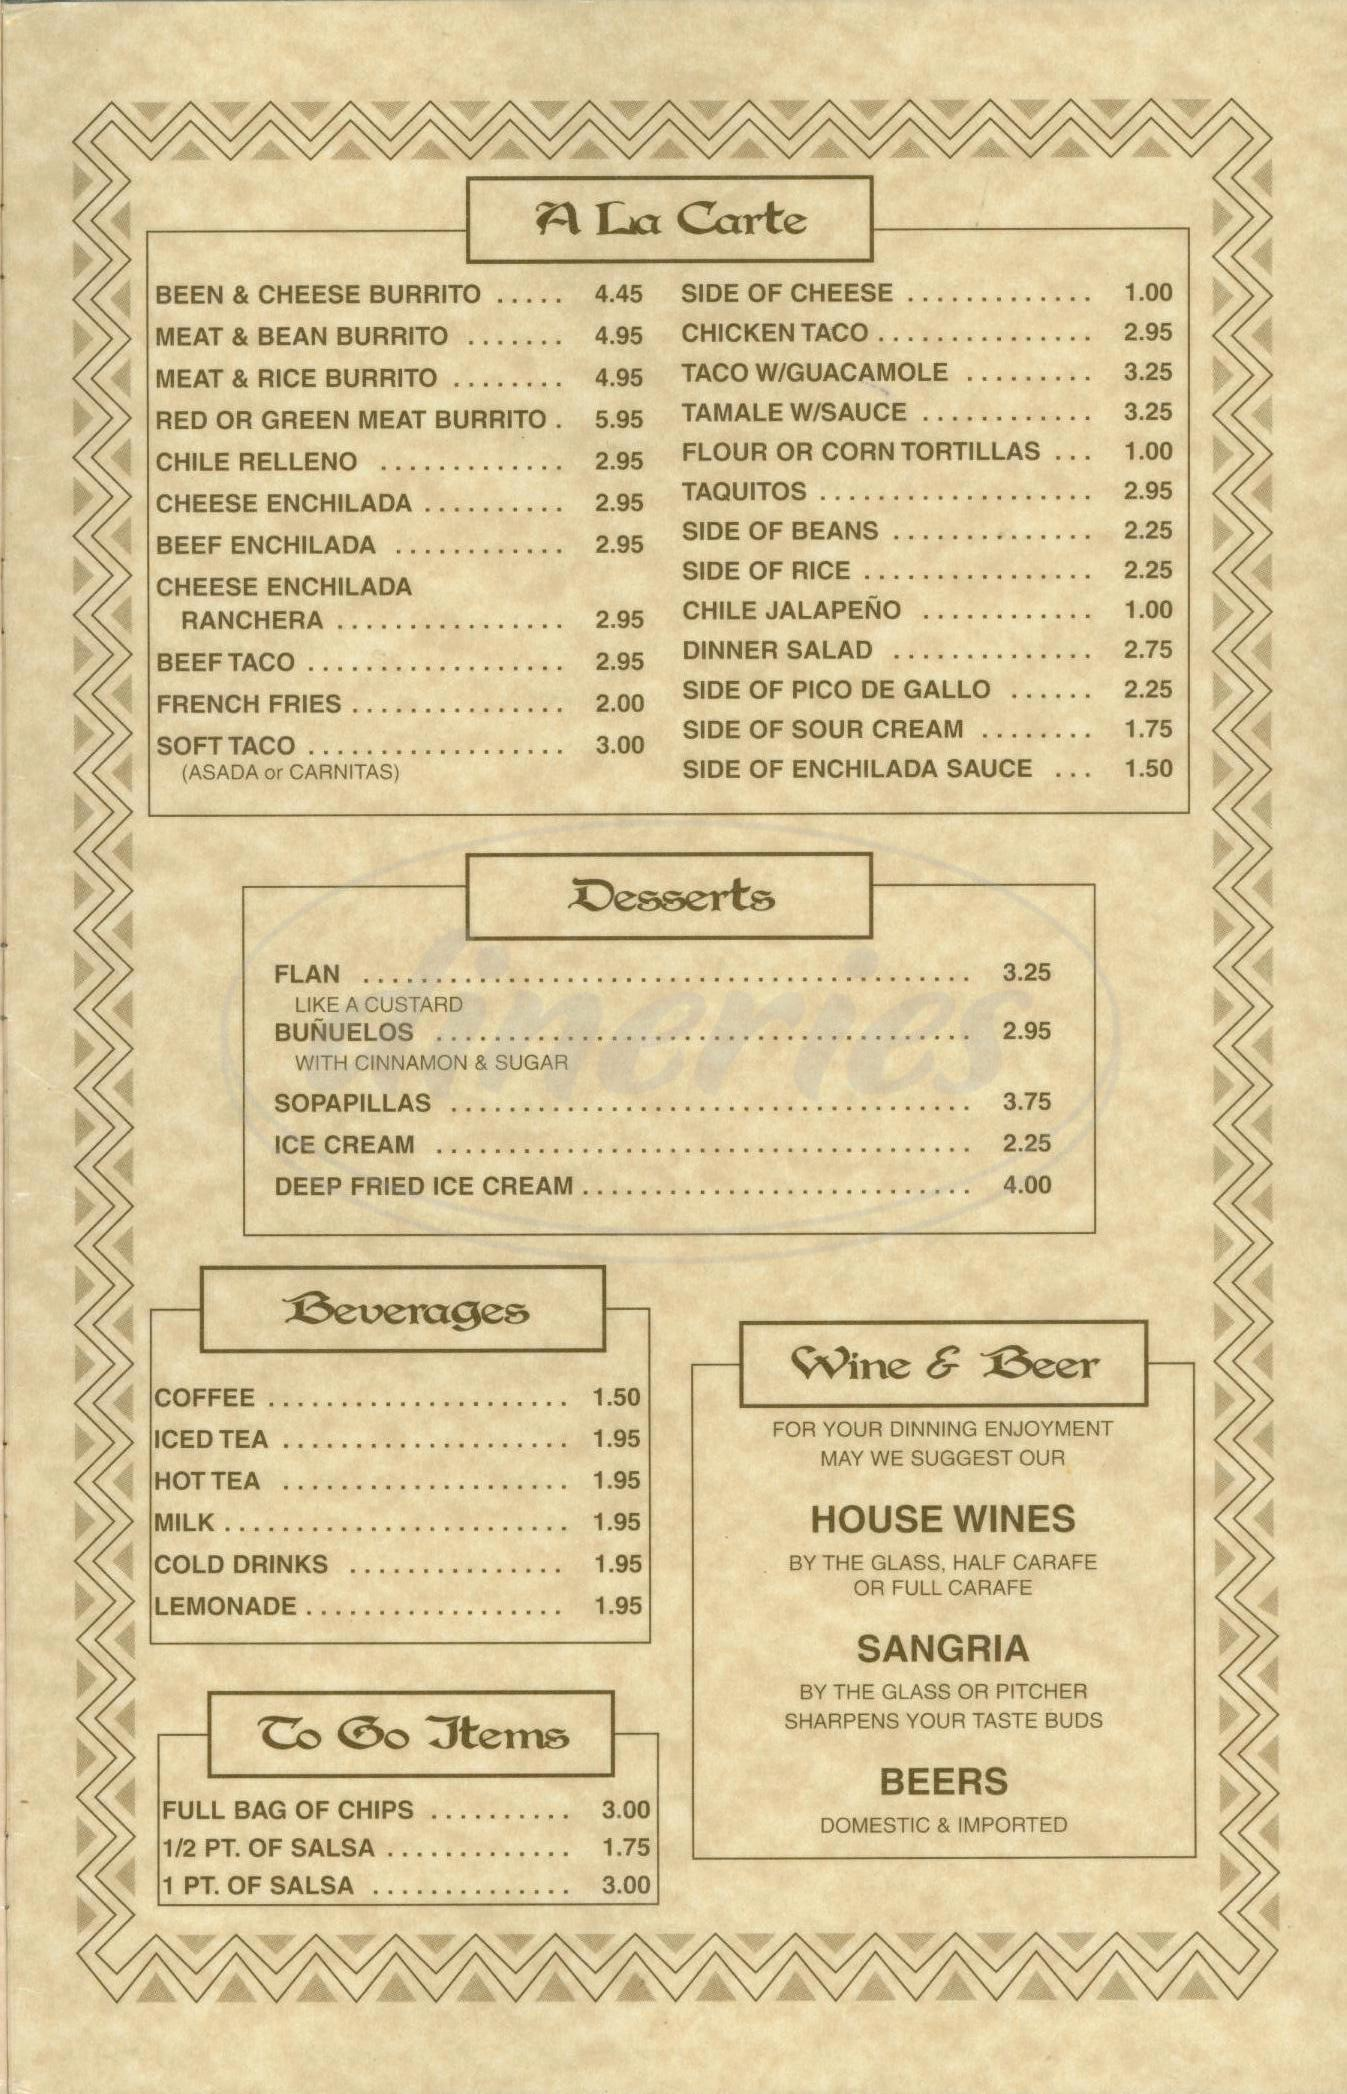 menu for Casa Gamino